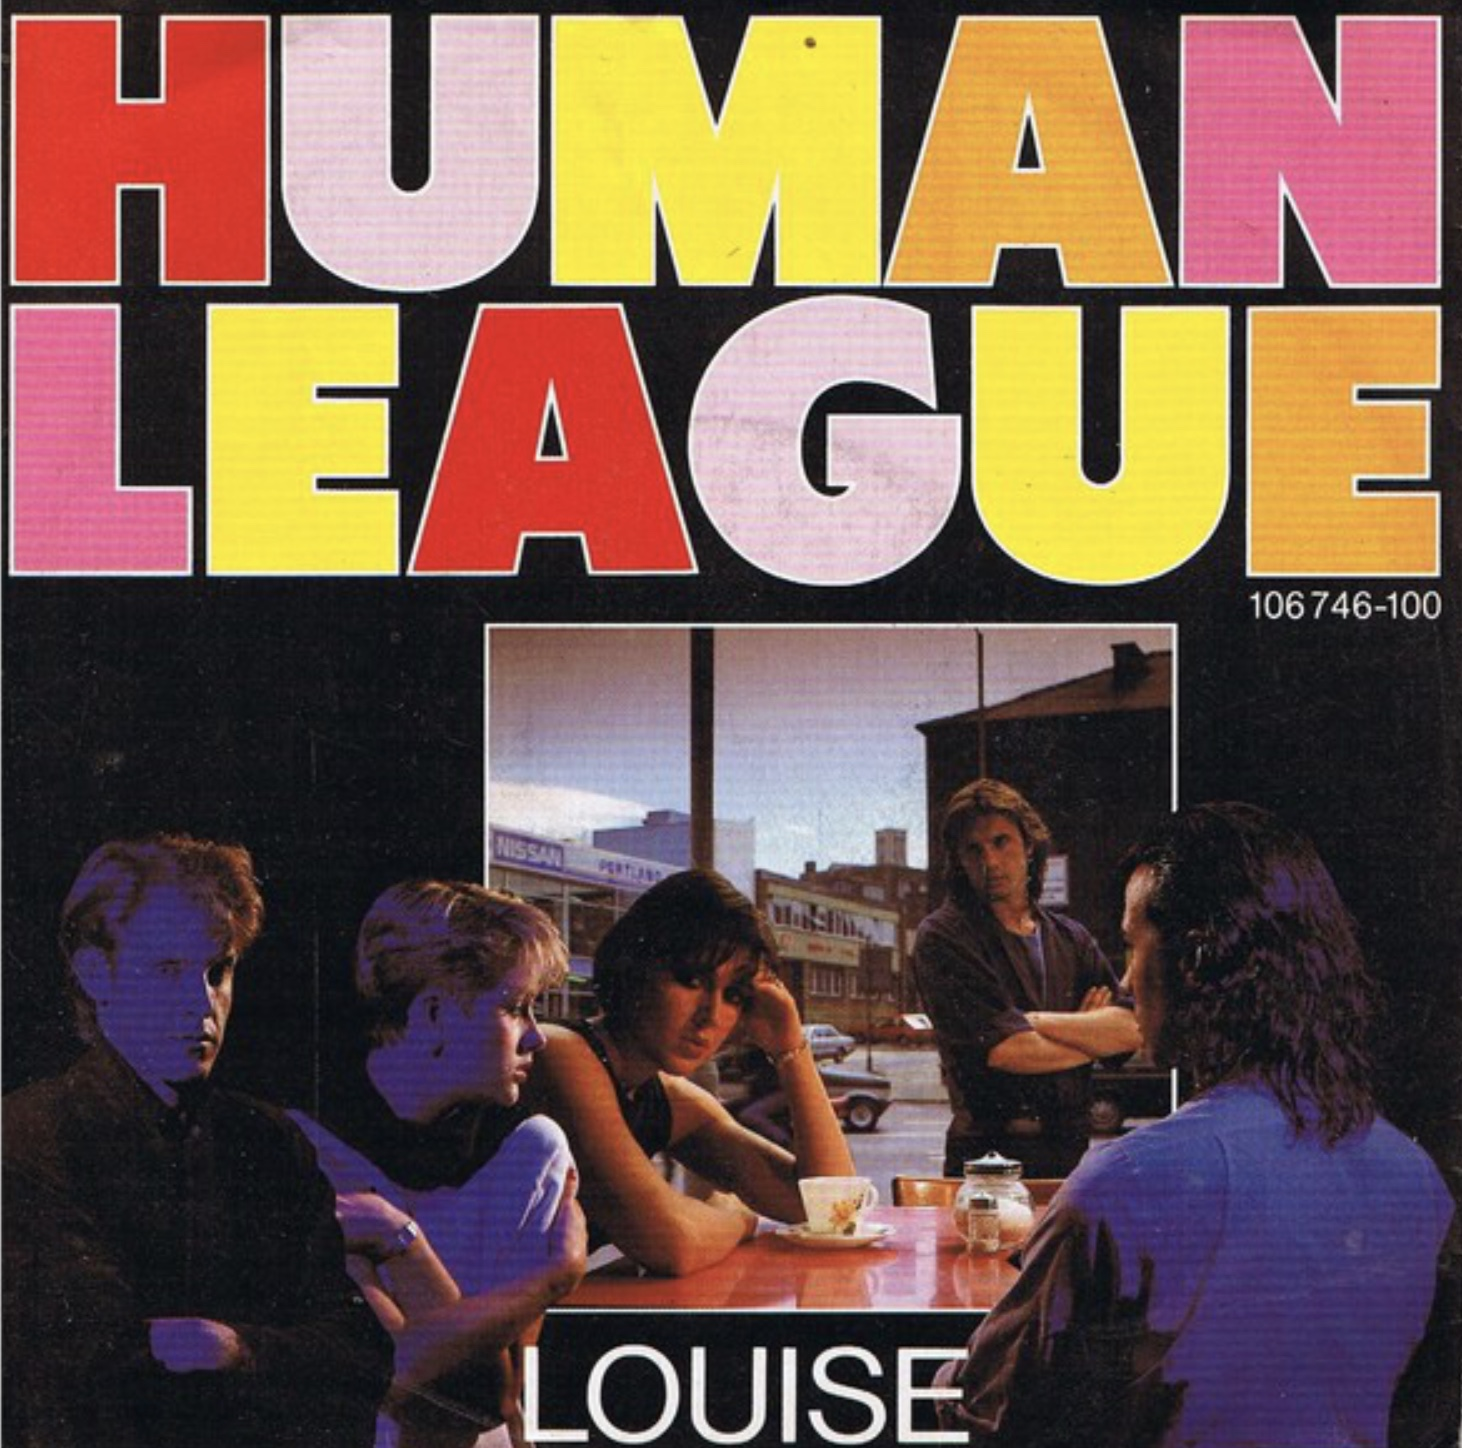 Human League Louise - Here's the Sheffield location of the single cover!